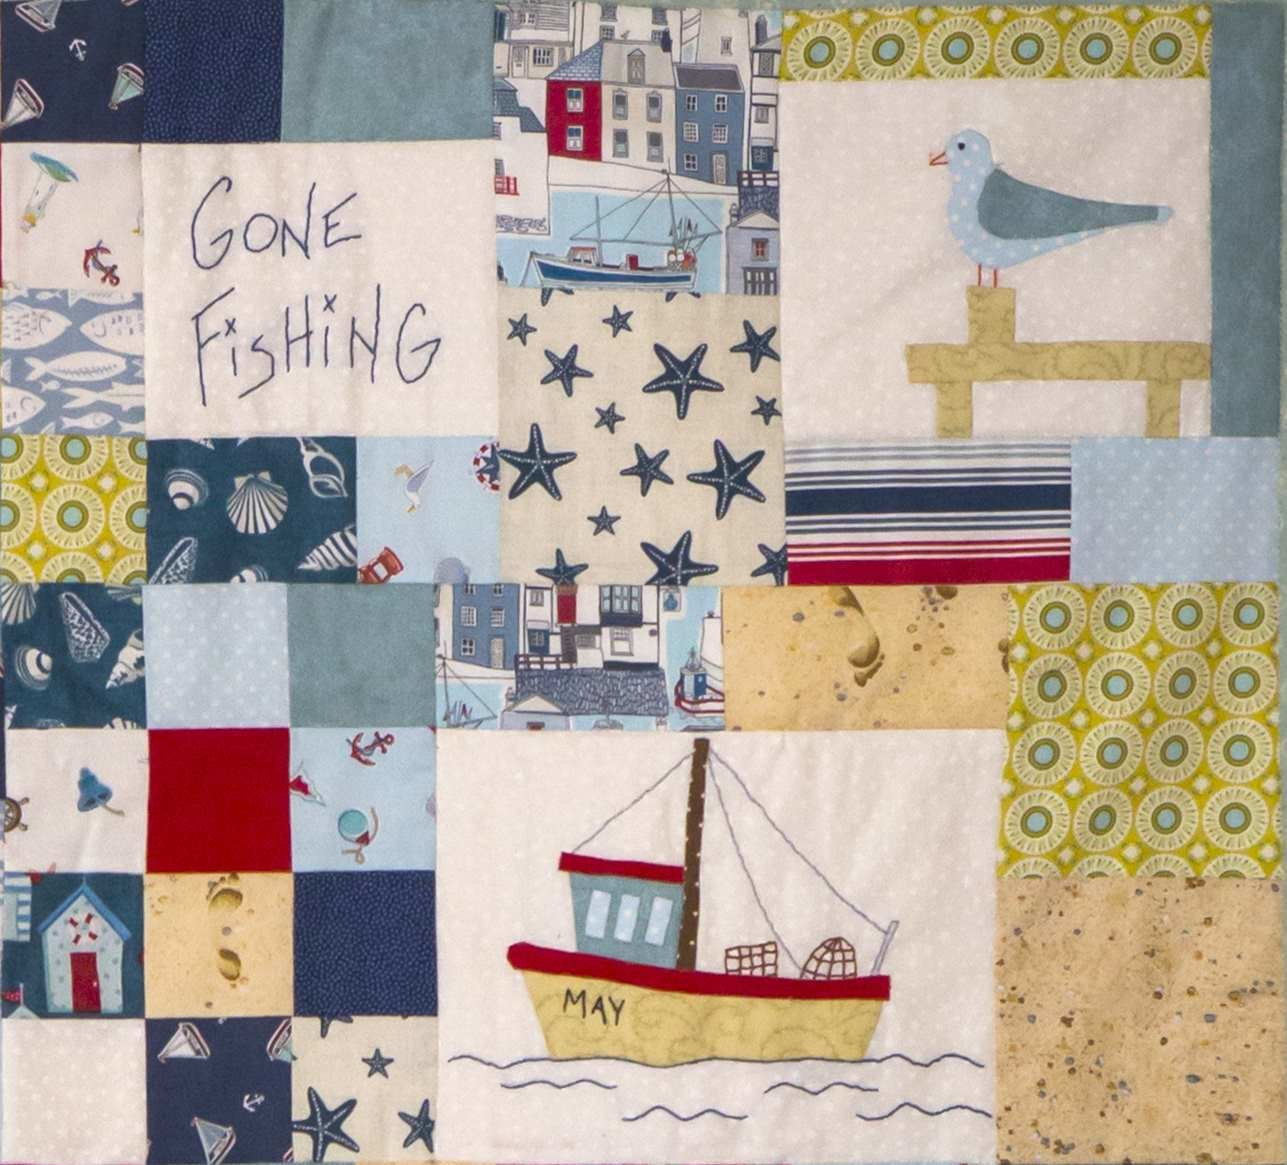 6mth BOM quilt - Down by the seaside - Month 2 Gone Fishing PDF pattern